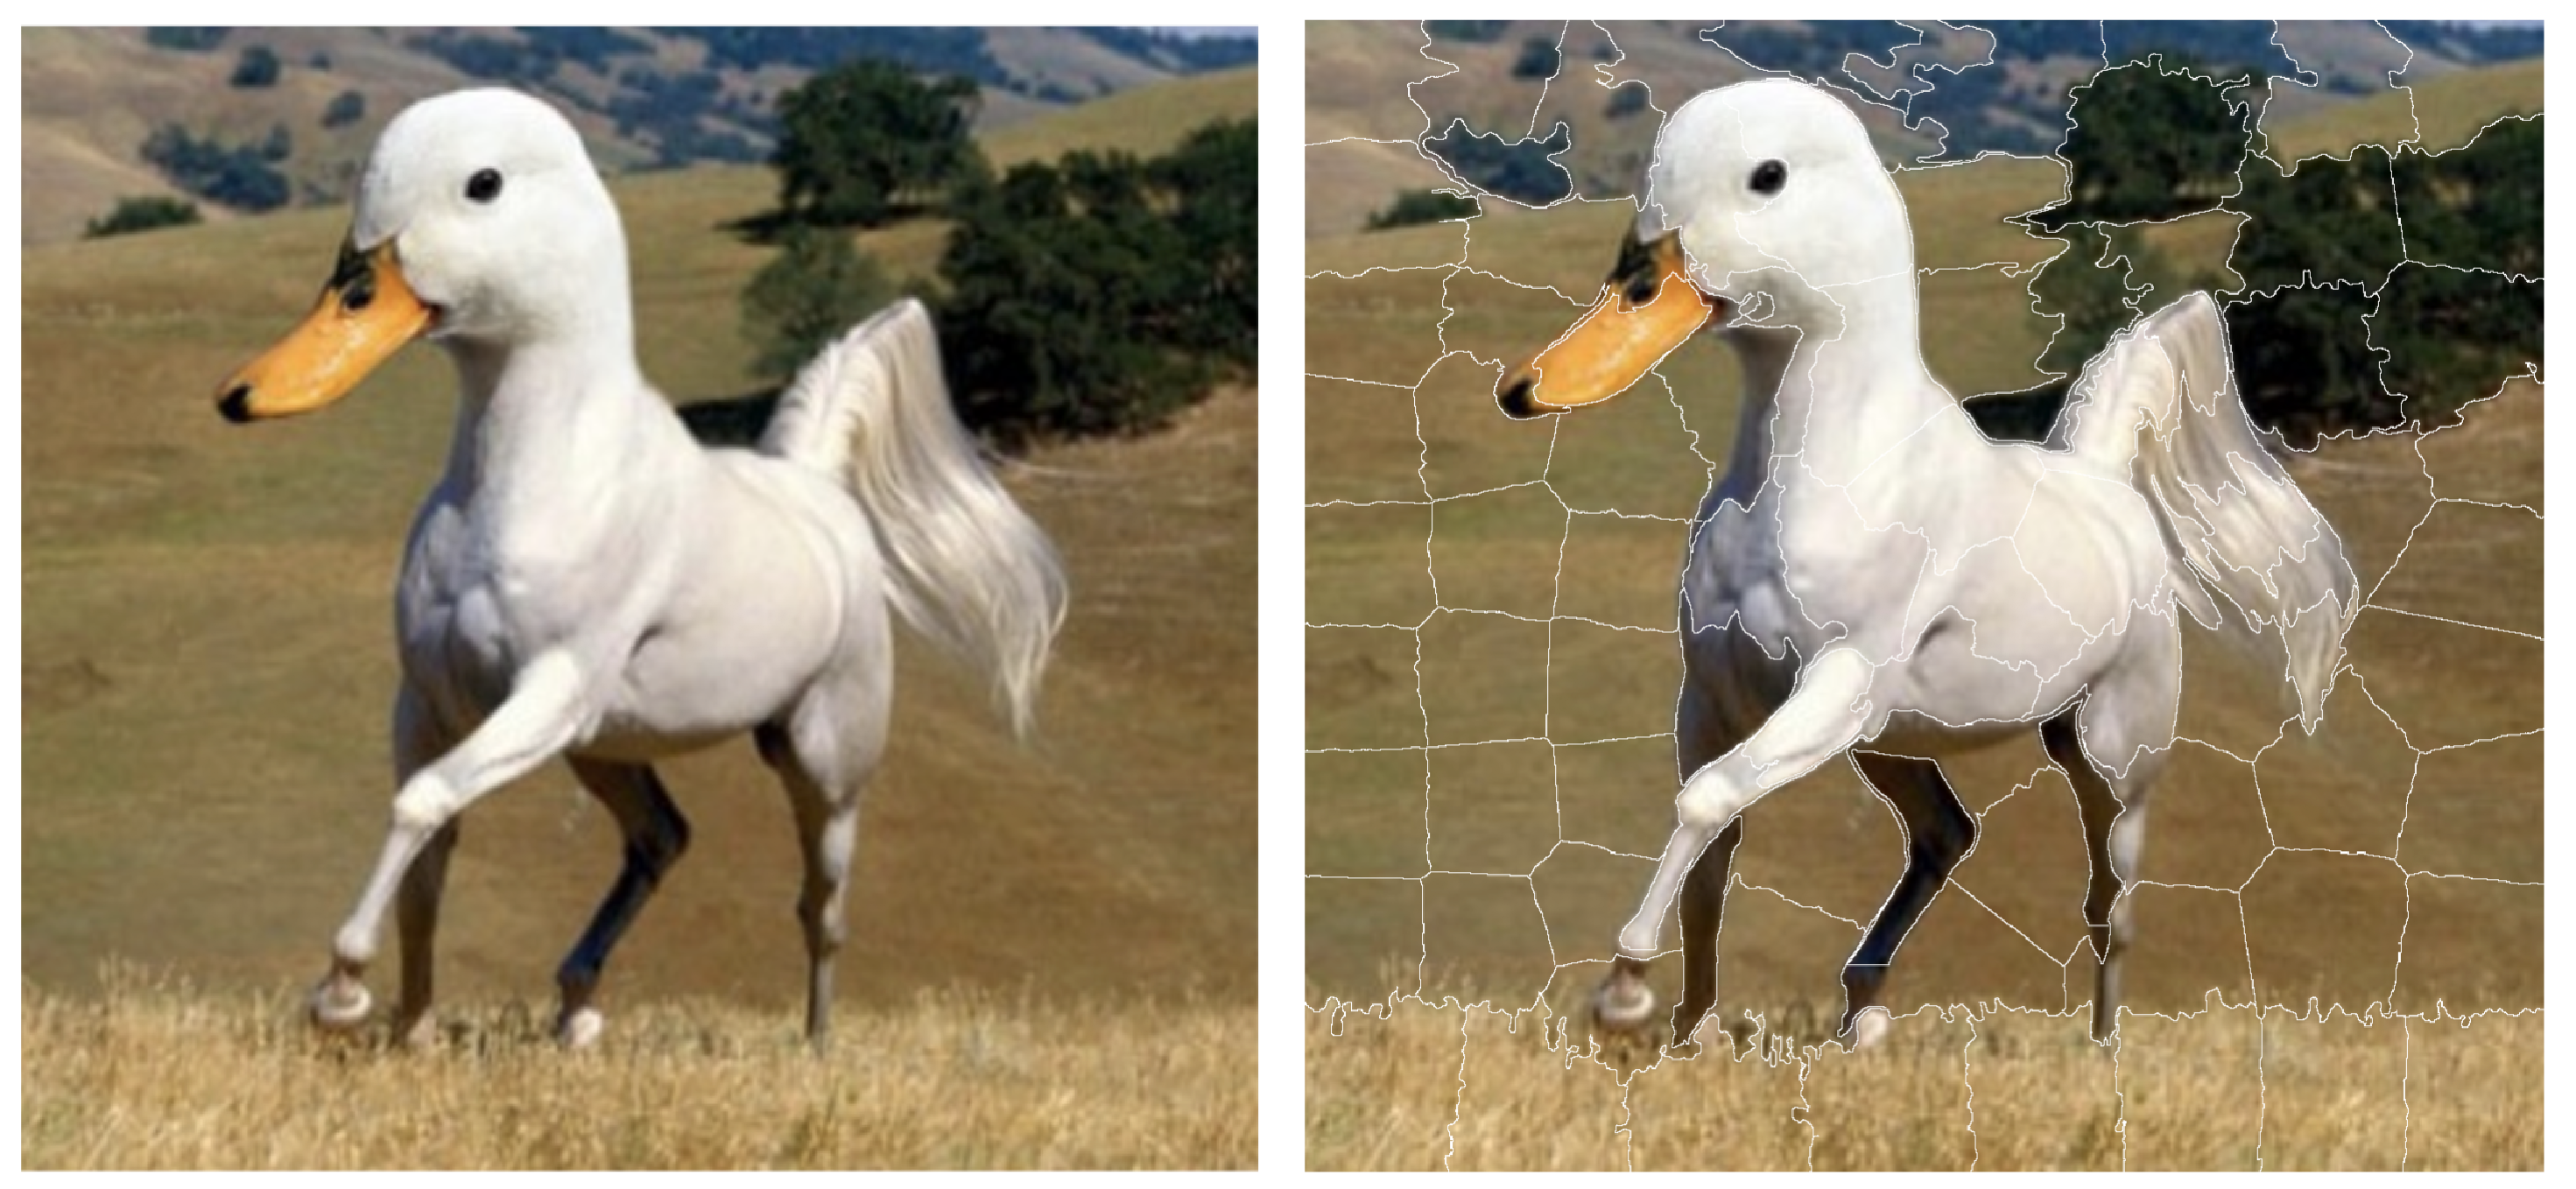 The left-hand-side panel shows an ambiguous picture, half-horse and half-duck (source Twitter). The right-hand-side panel shows 100 superpixels identified for this figure.